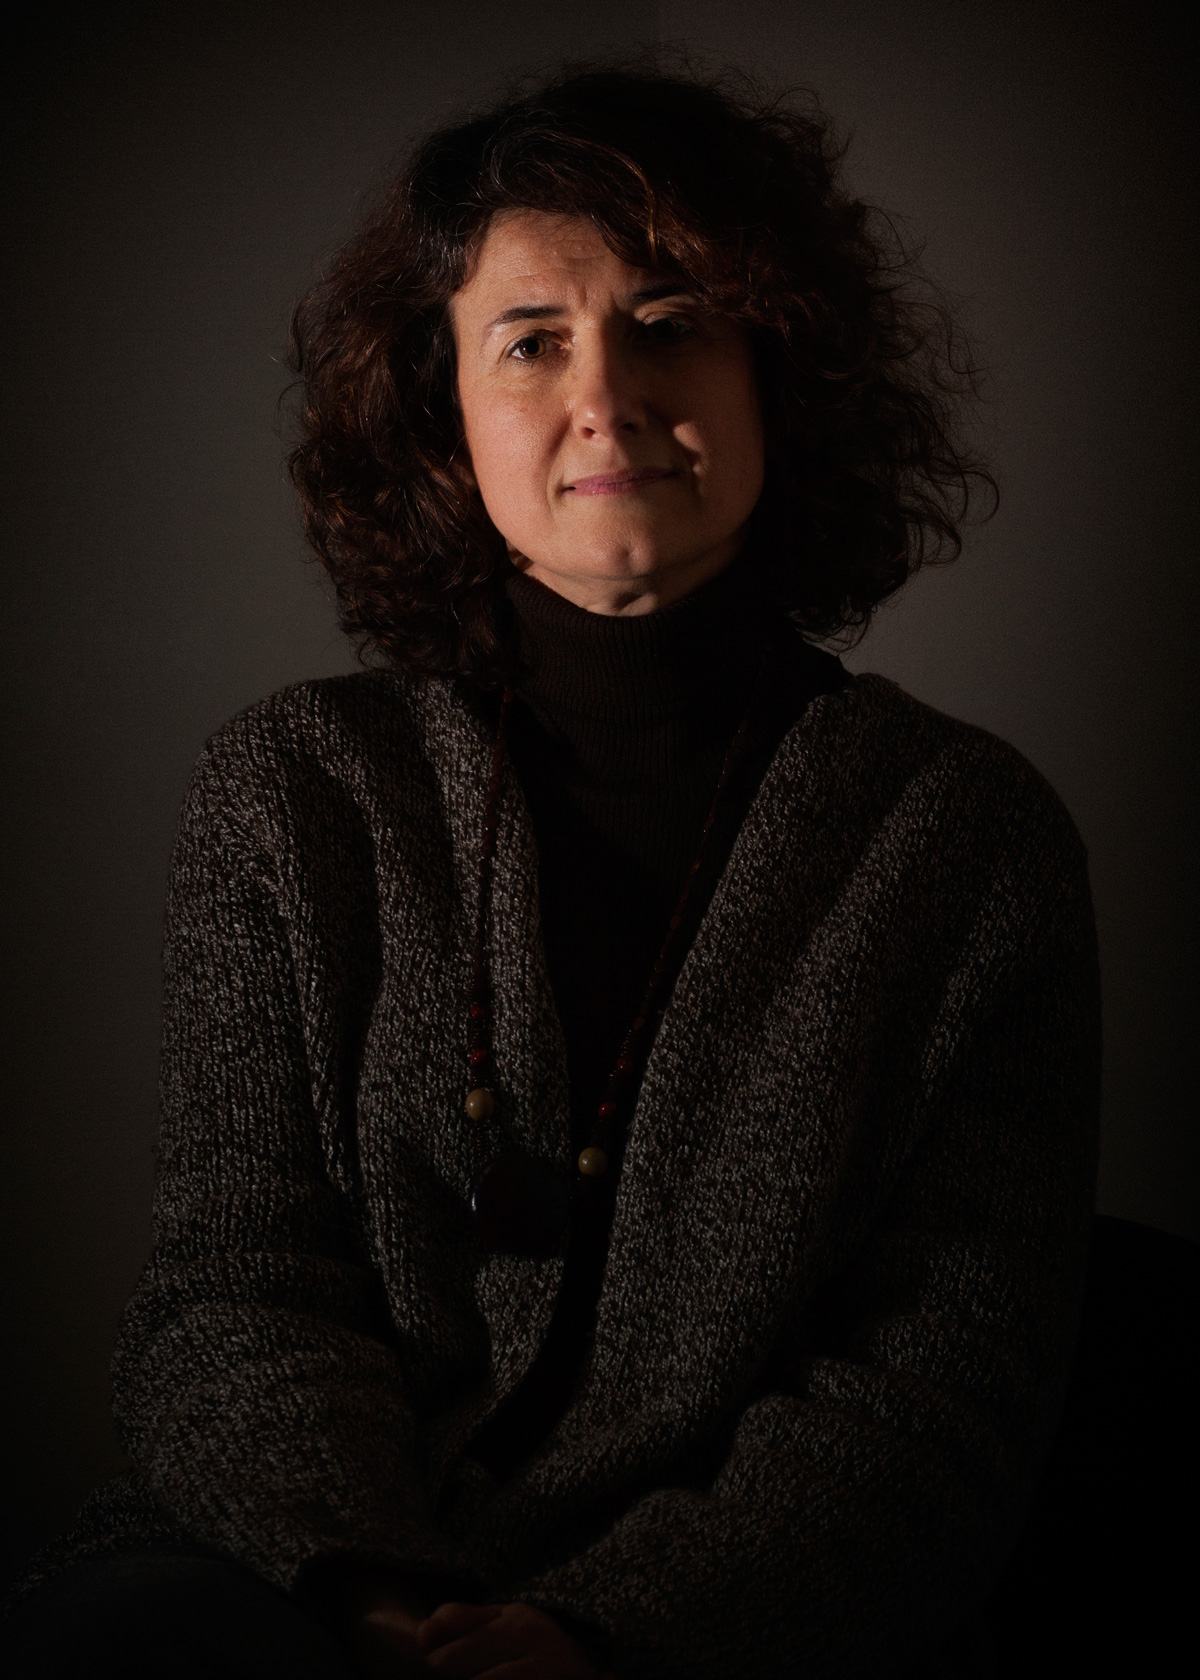 Özlem Özkan was dismissed from her position as associate professor.